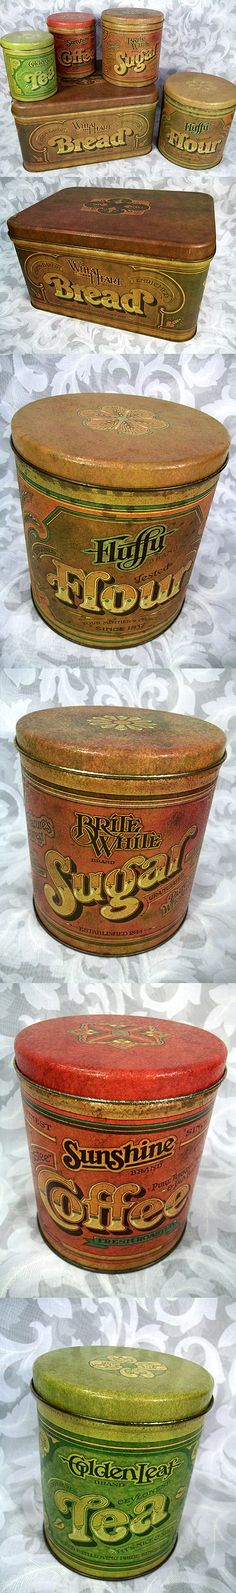 Sold Vintage 1977 Ballonoff Tin Canister Set Fluffy Flour, Brite White Sugar, Sunshine Coffee, Golden Leaf Tea and Wheat Heart Bread